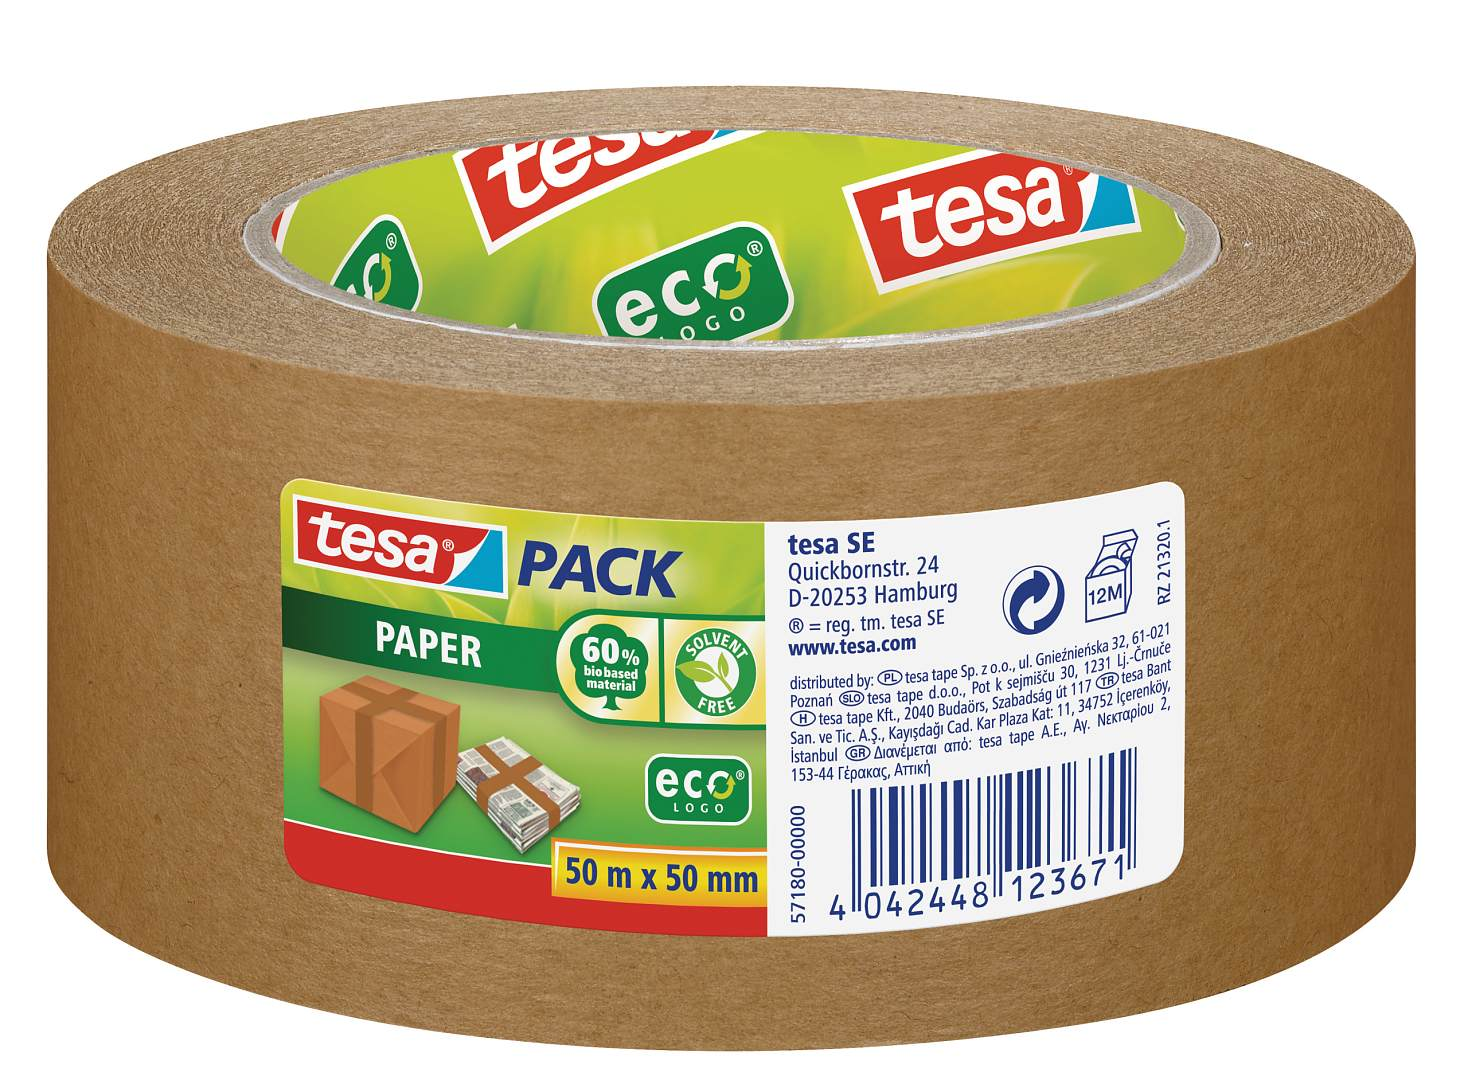 tesa Recycld Ppr Packaging Tape 50mm x 50M Brown 57180 PK6